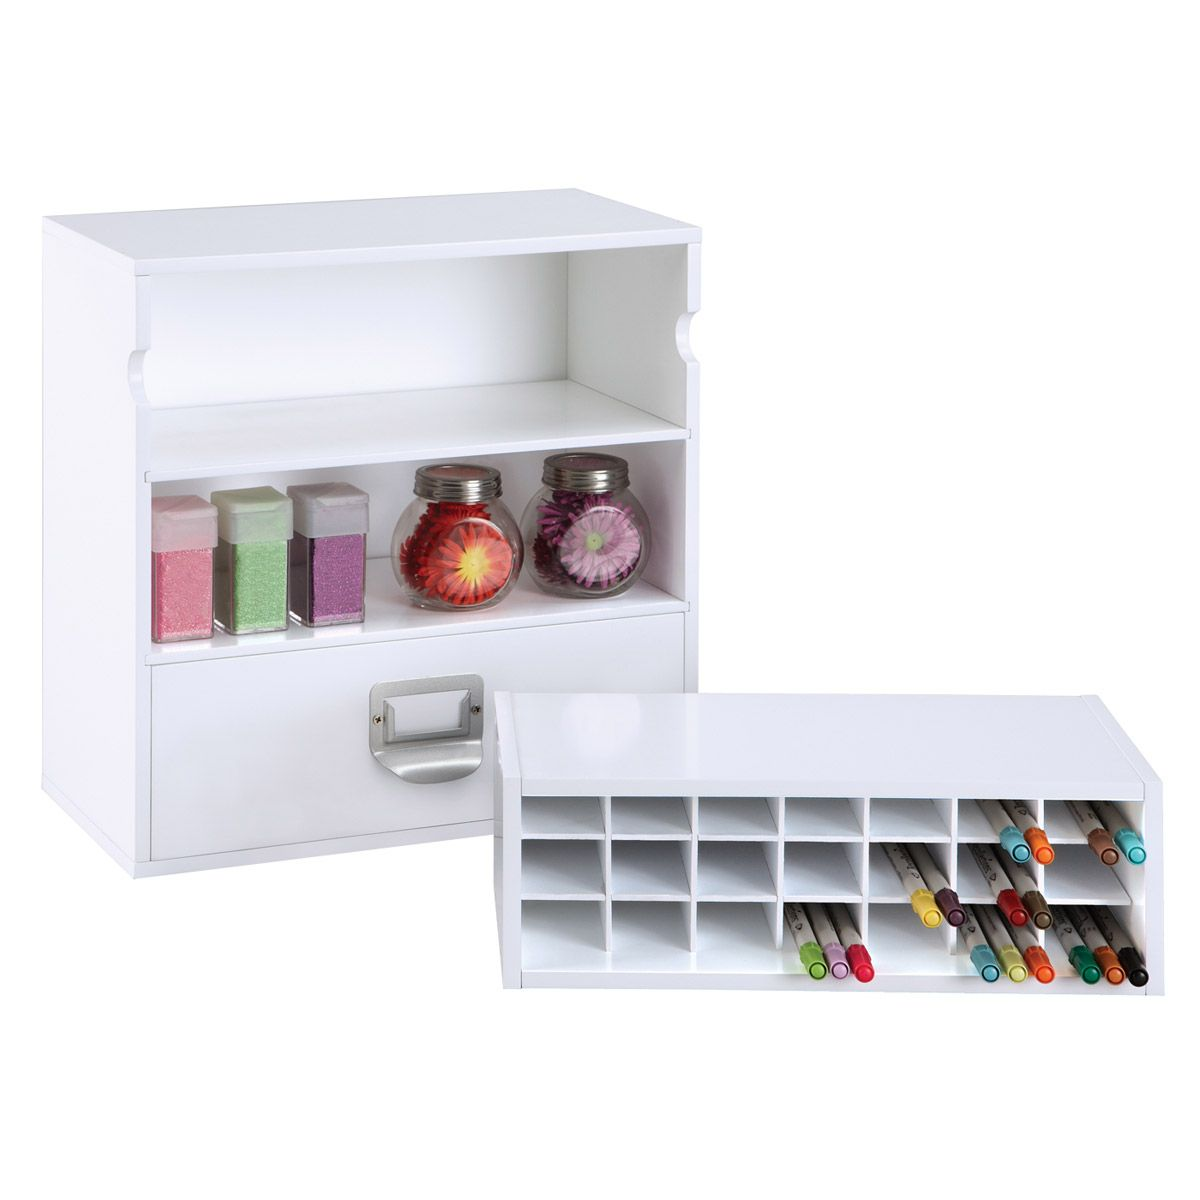 The Recollections Markers Storage Organizer Fits Nicely Into Our Storage Cube For Easy Access To Every Ma Marker Storage Craft Storage Craft Storage Solutions